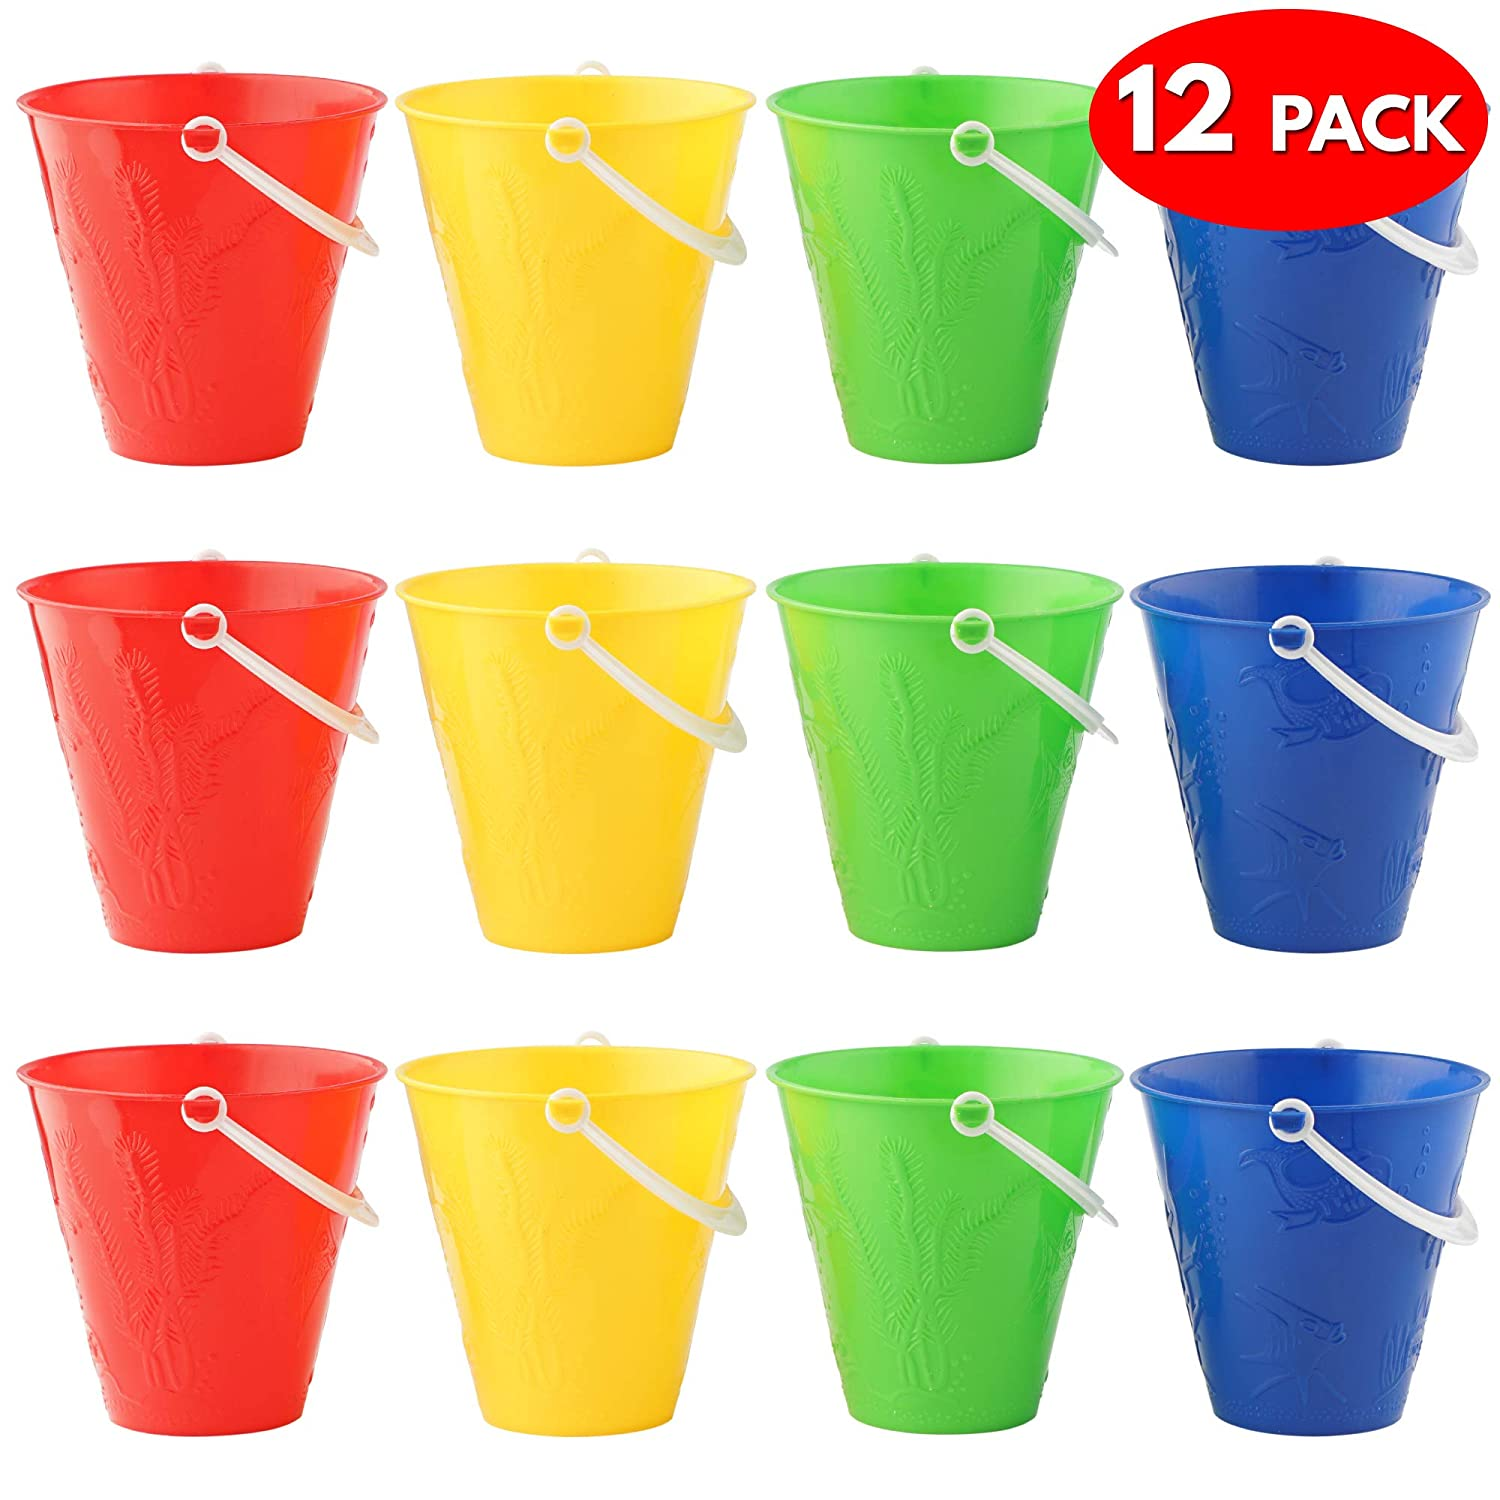 12 Brightly Coloured Buckets - Assorted Colours - Ideal for Beach, Park or Sandpit - bargain wholesale, great savings - buy bulk bucket for a more fun beach party - Red, Blue, Green, Yellow. Bramble